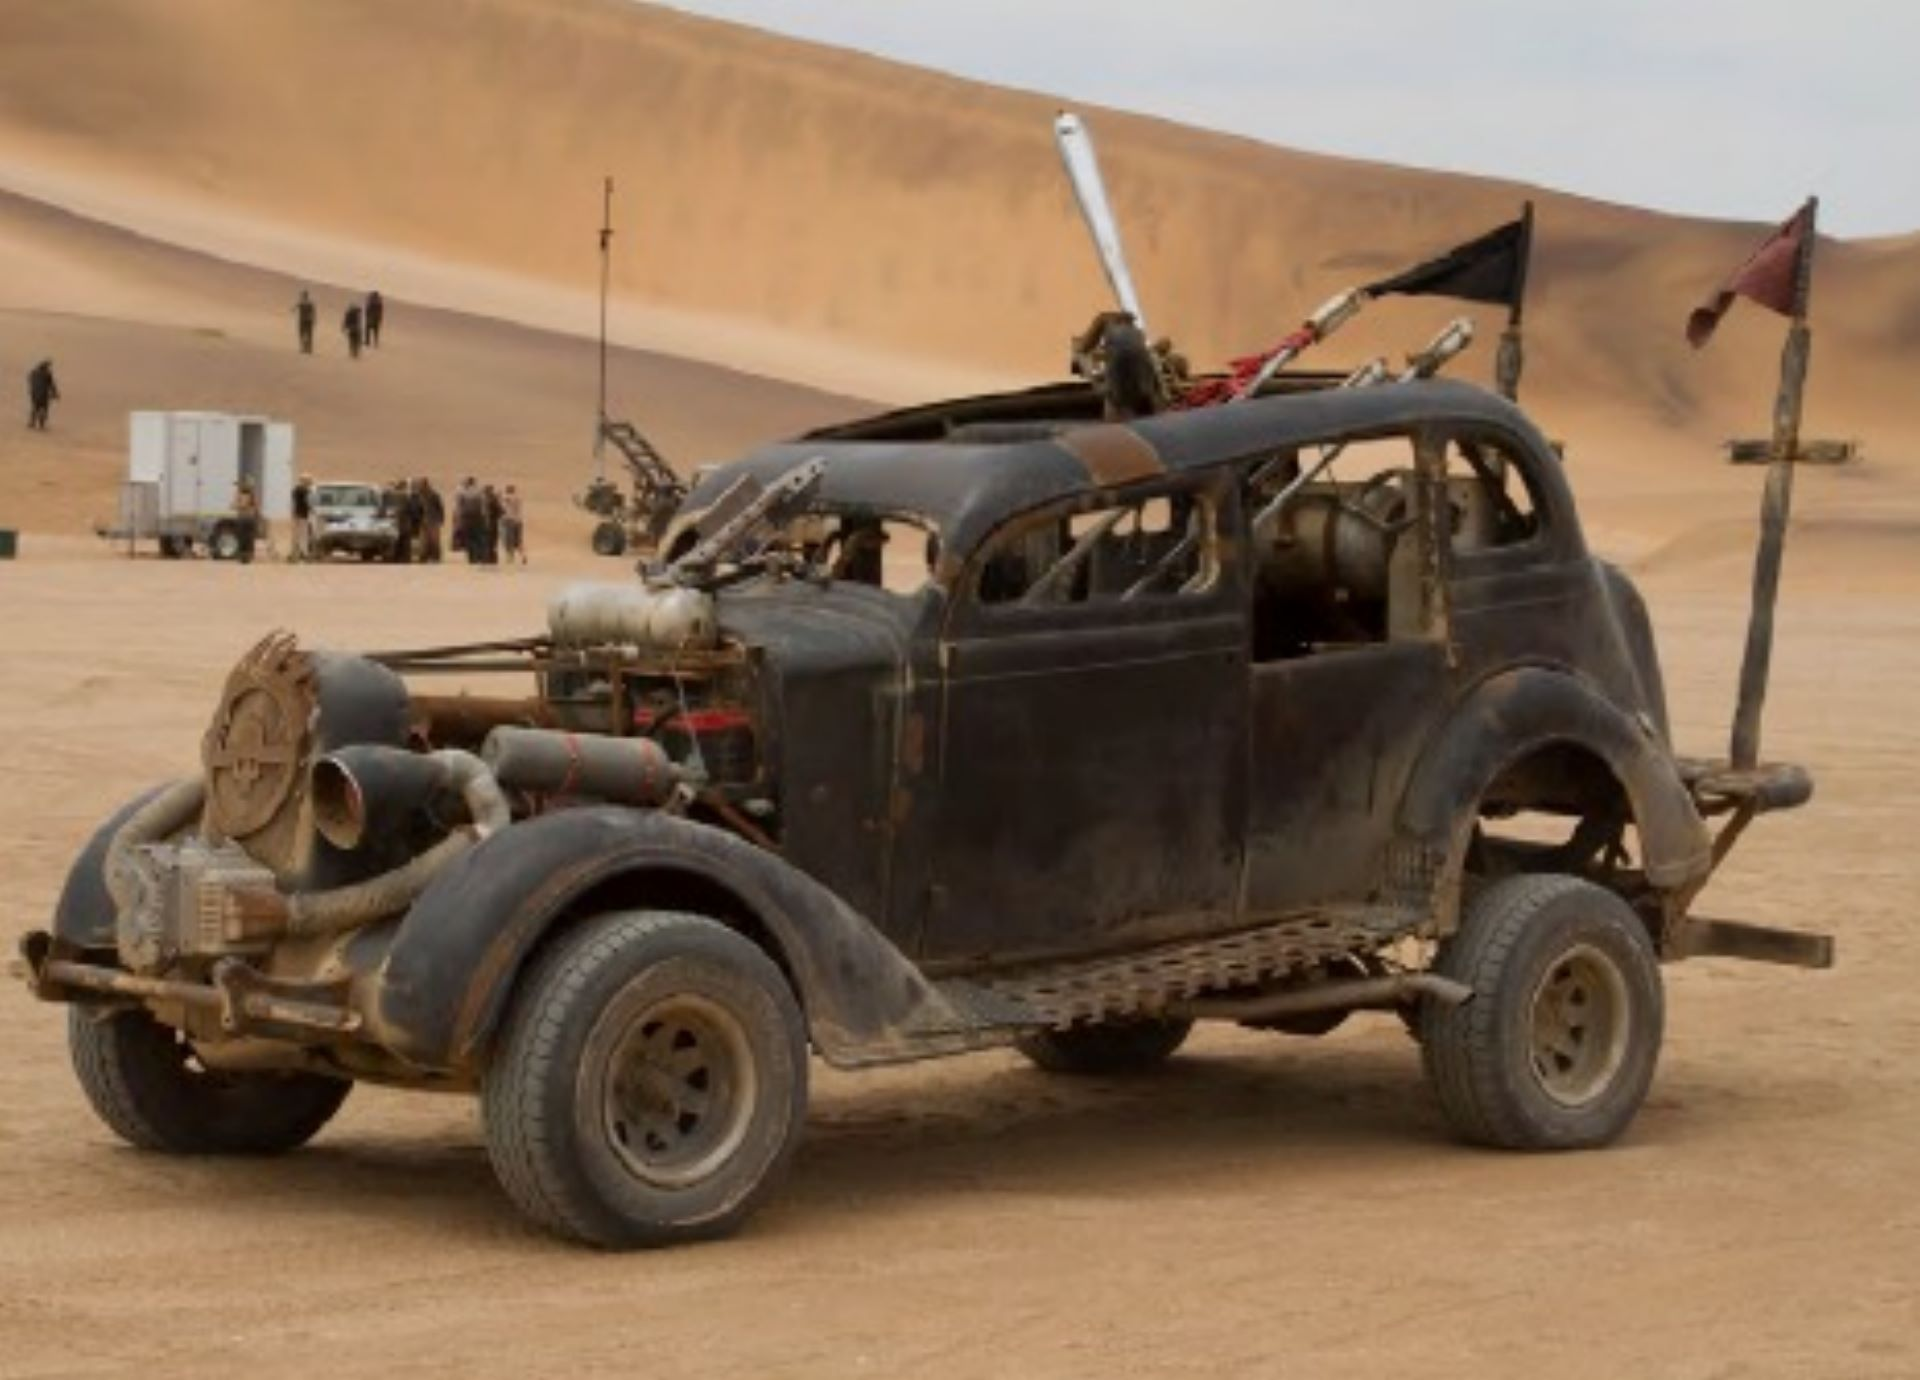 Mad-Max-Fury-Road-cars-for-sale-8